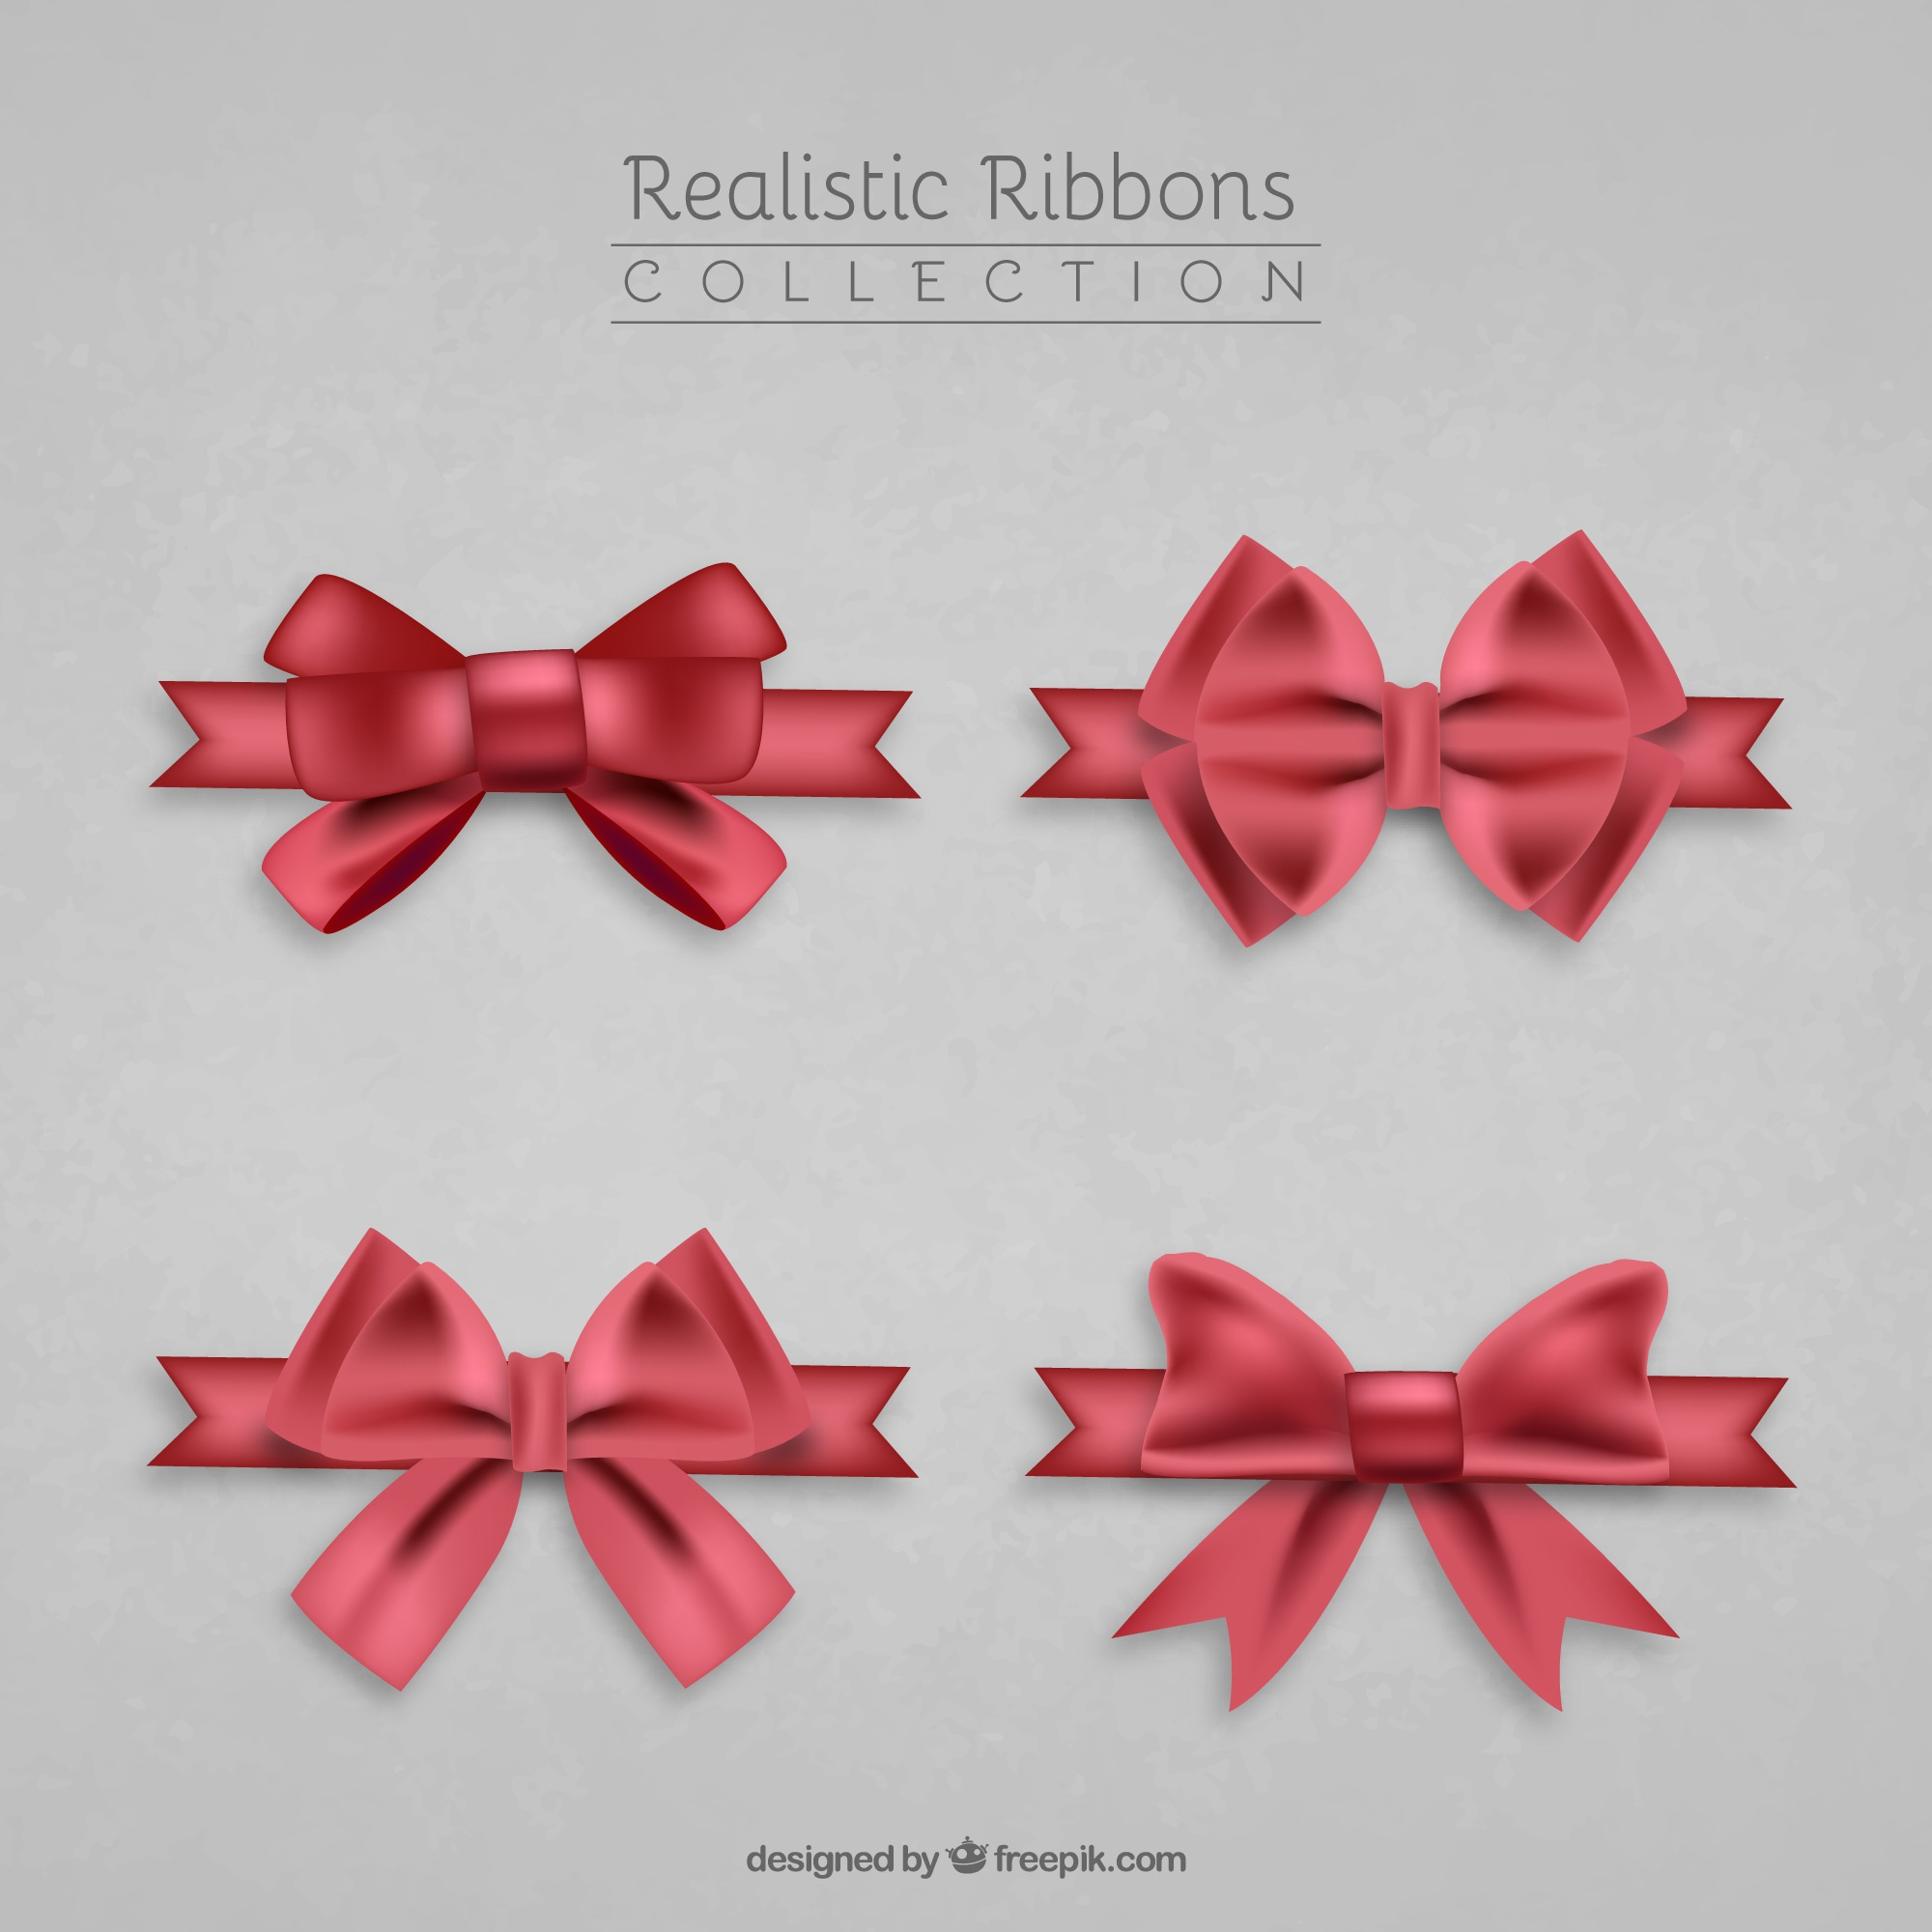 Realistic pack of four red ribbons